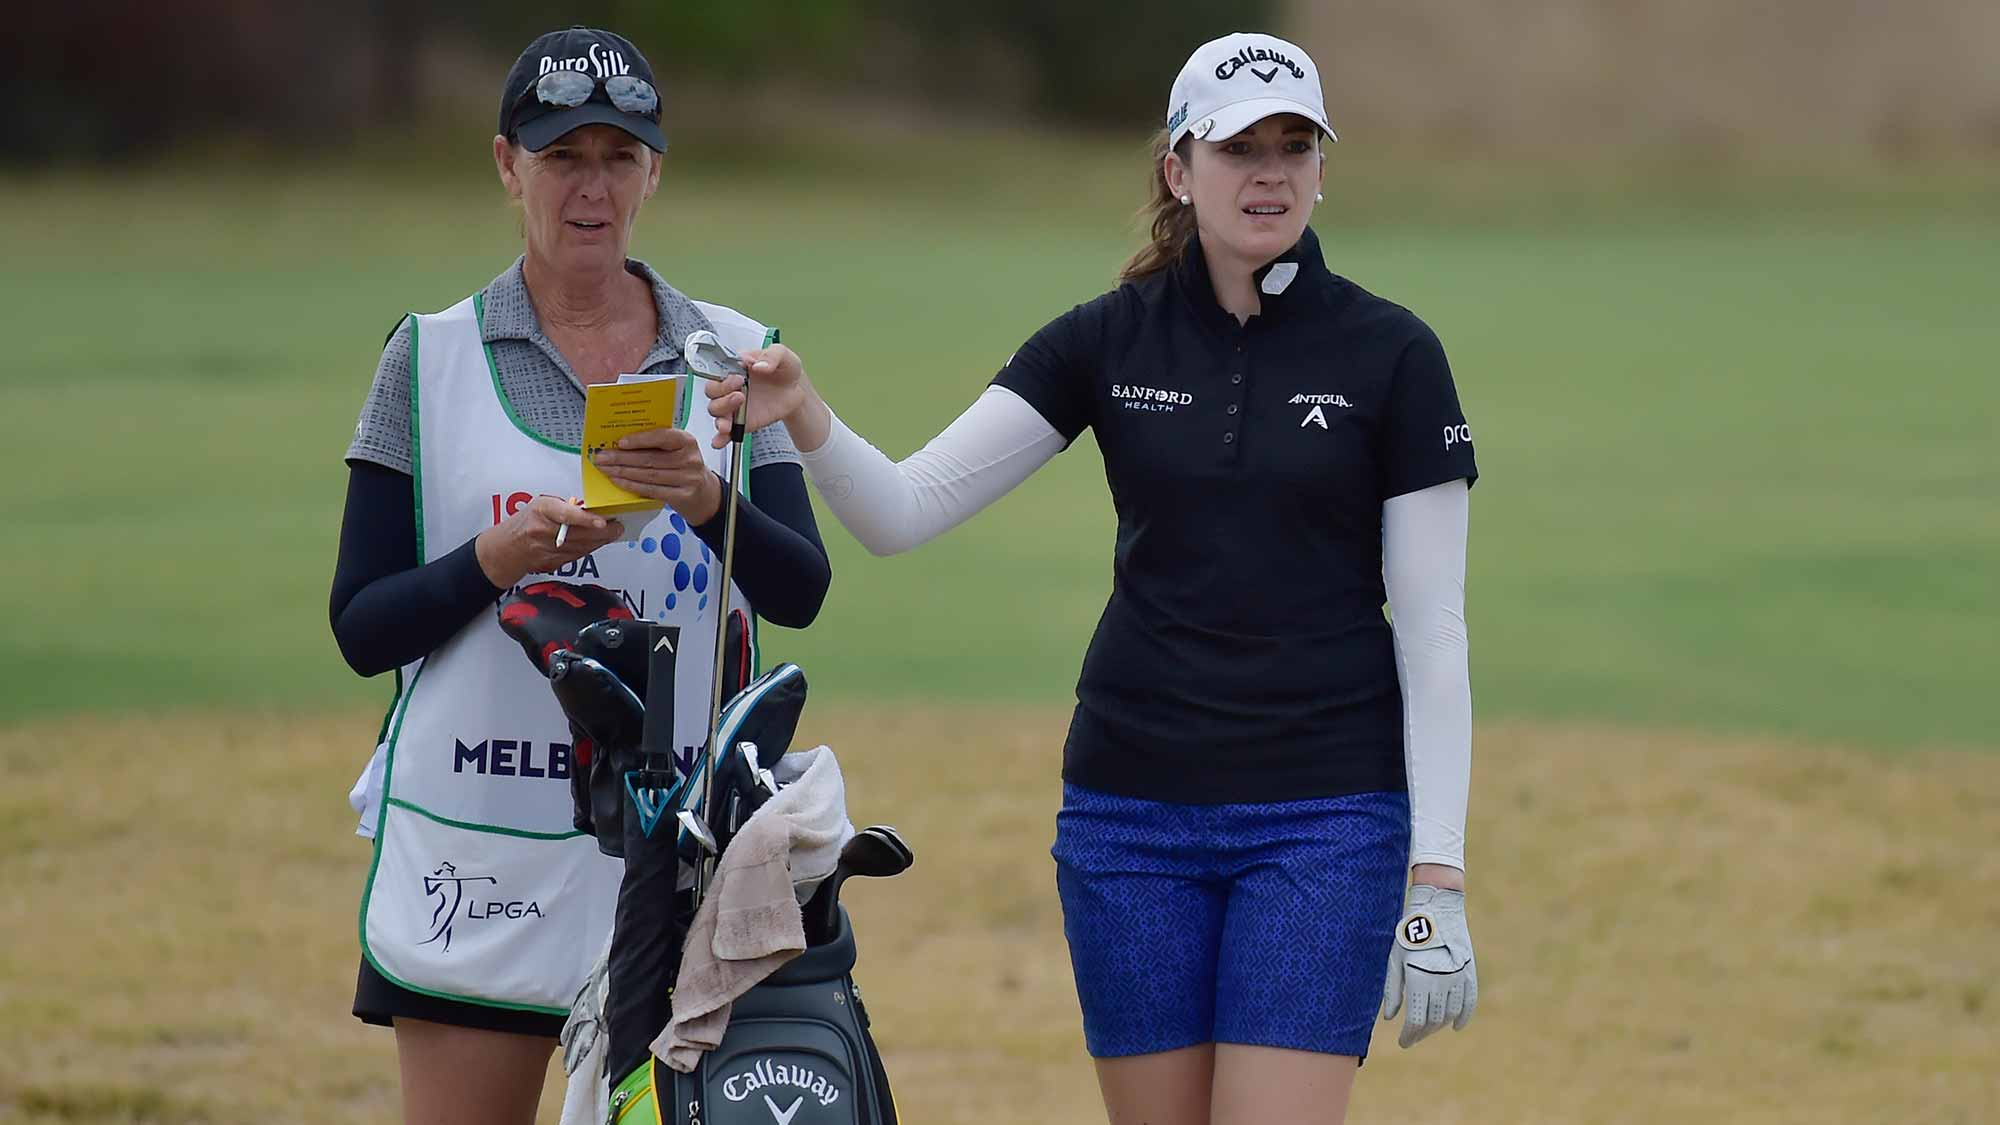 Kim Kaufman stands with her caddie during the second round of the ISPS Handa Vic Open in Geelong, Australia on February 8, 2019